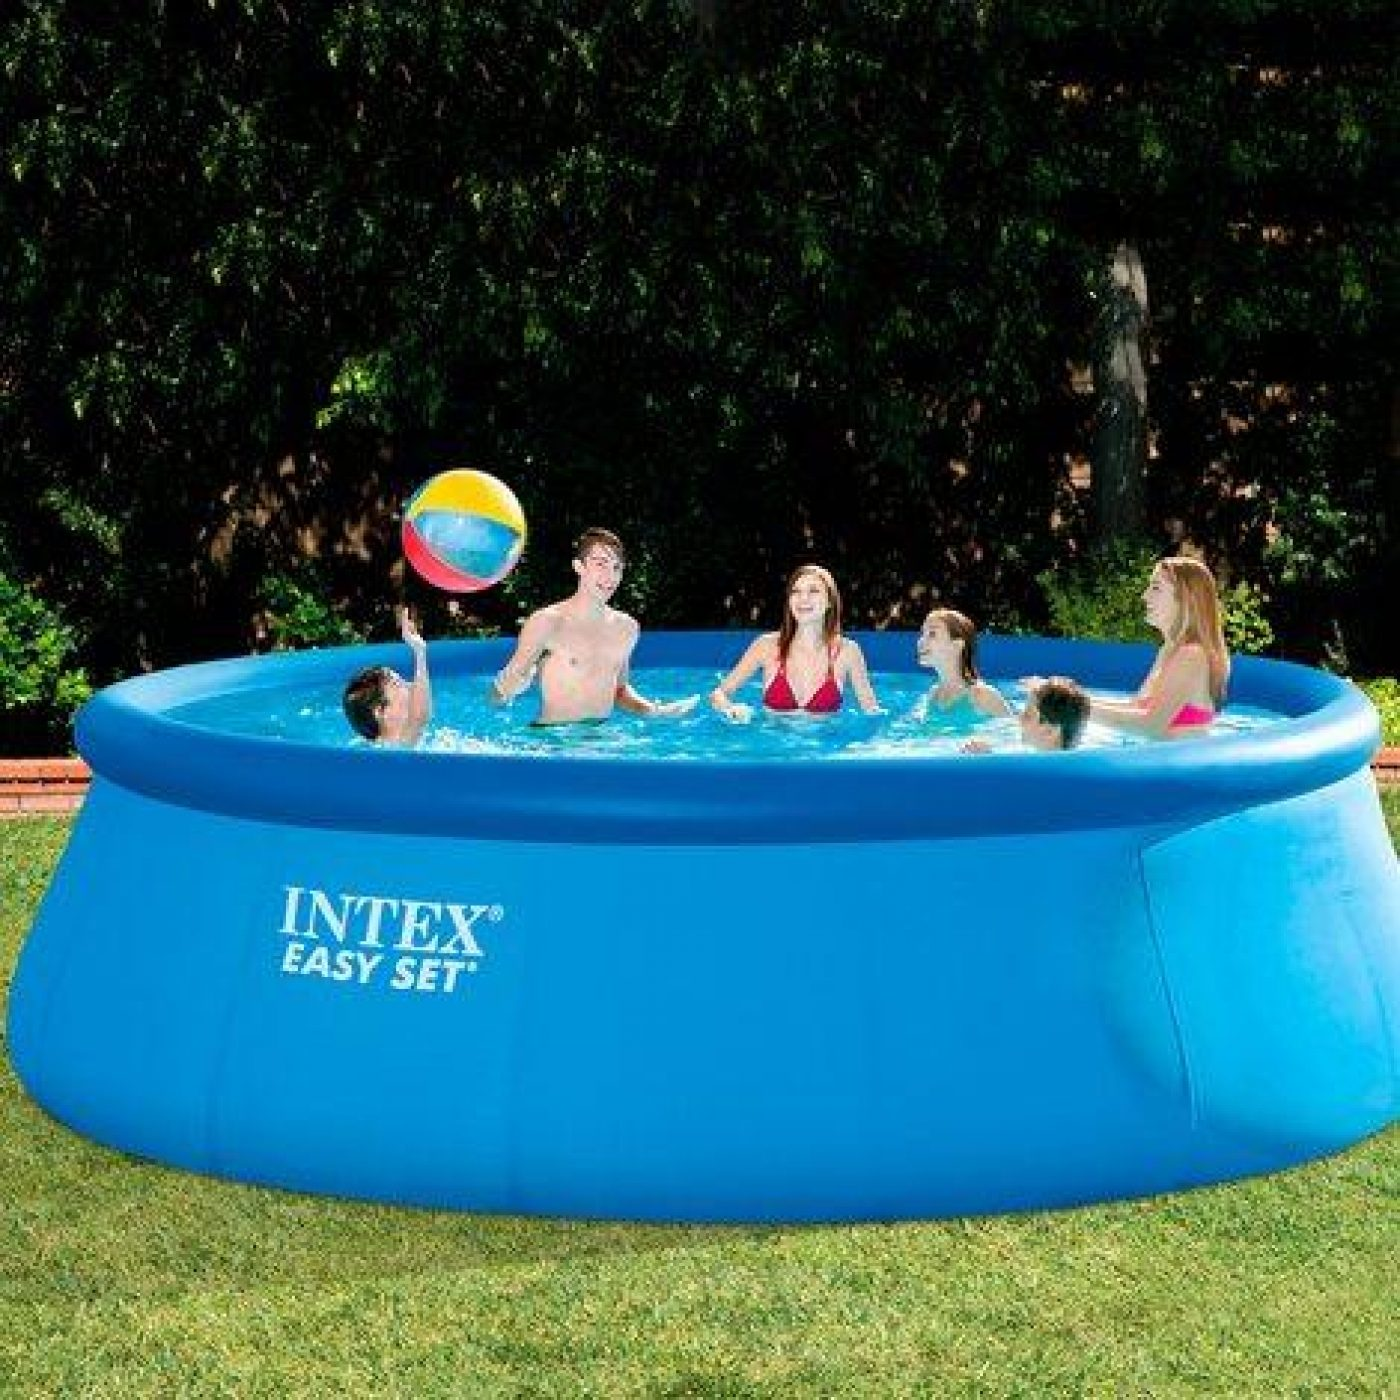 Intex Piscinas Acessorios Piscina Hinchable Intex Easy Set Con Aro Hinchable